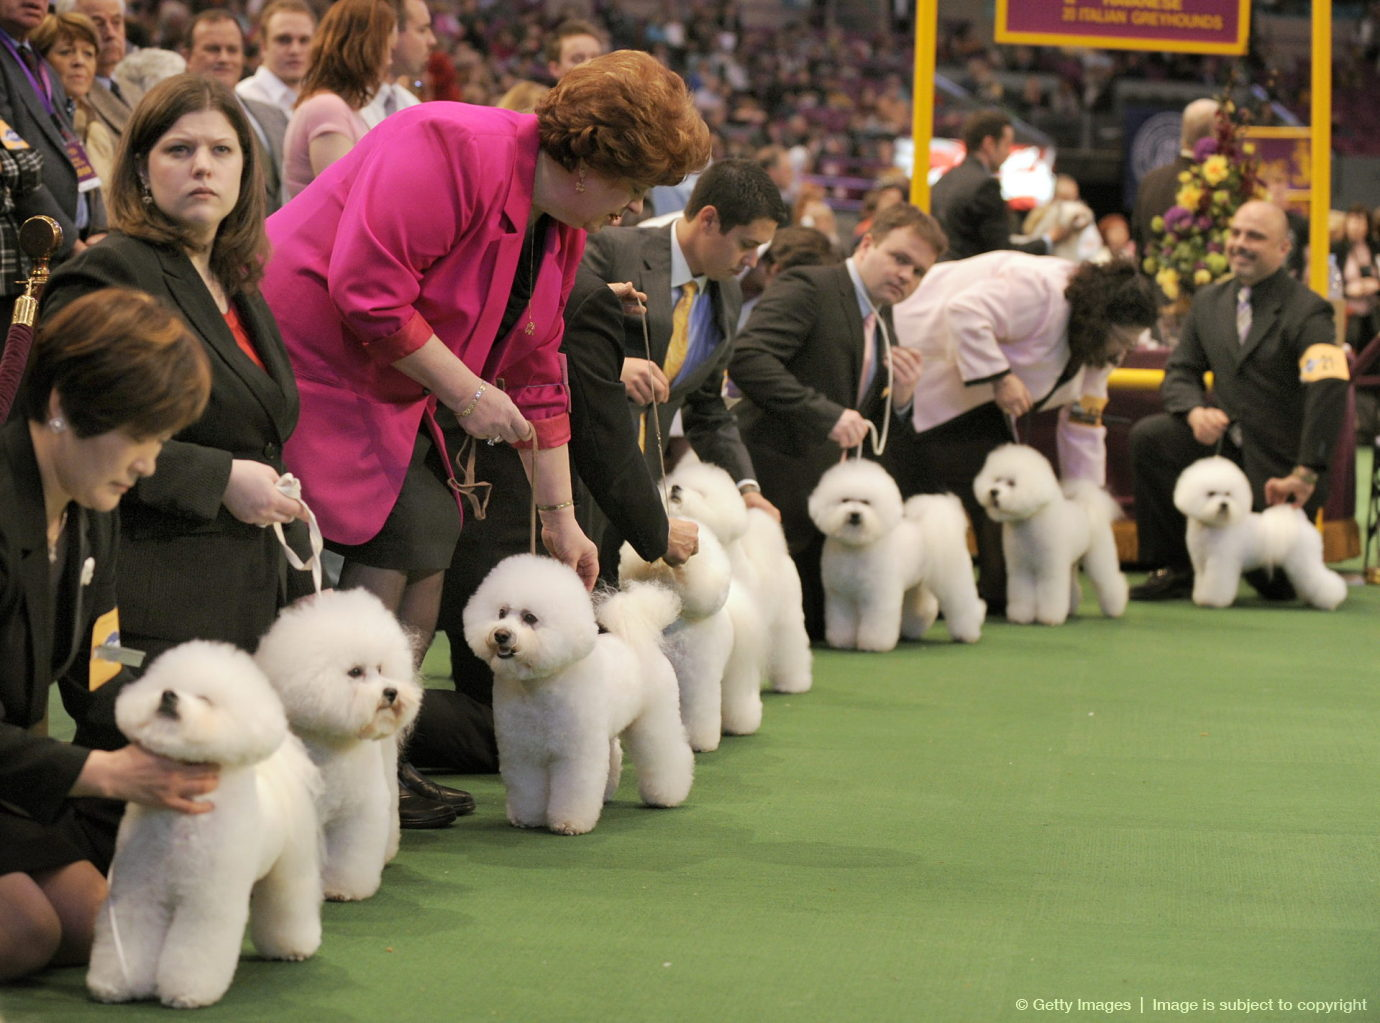 Bichon Frises line up in the ring during